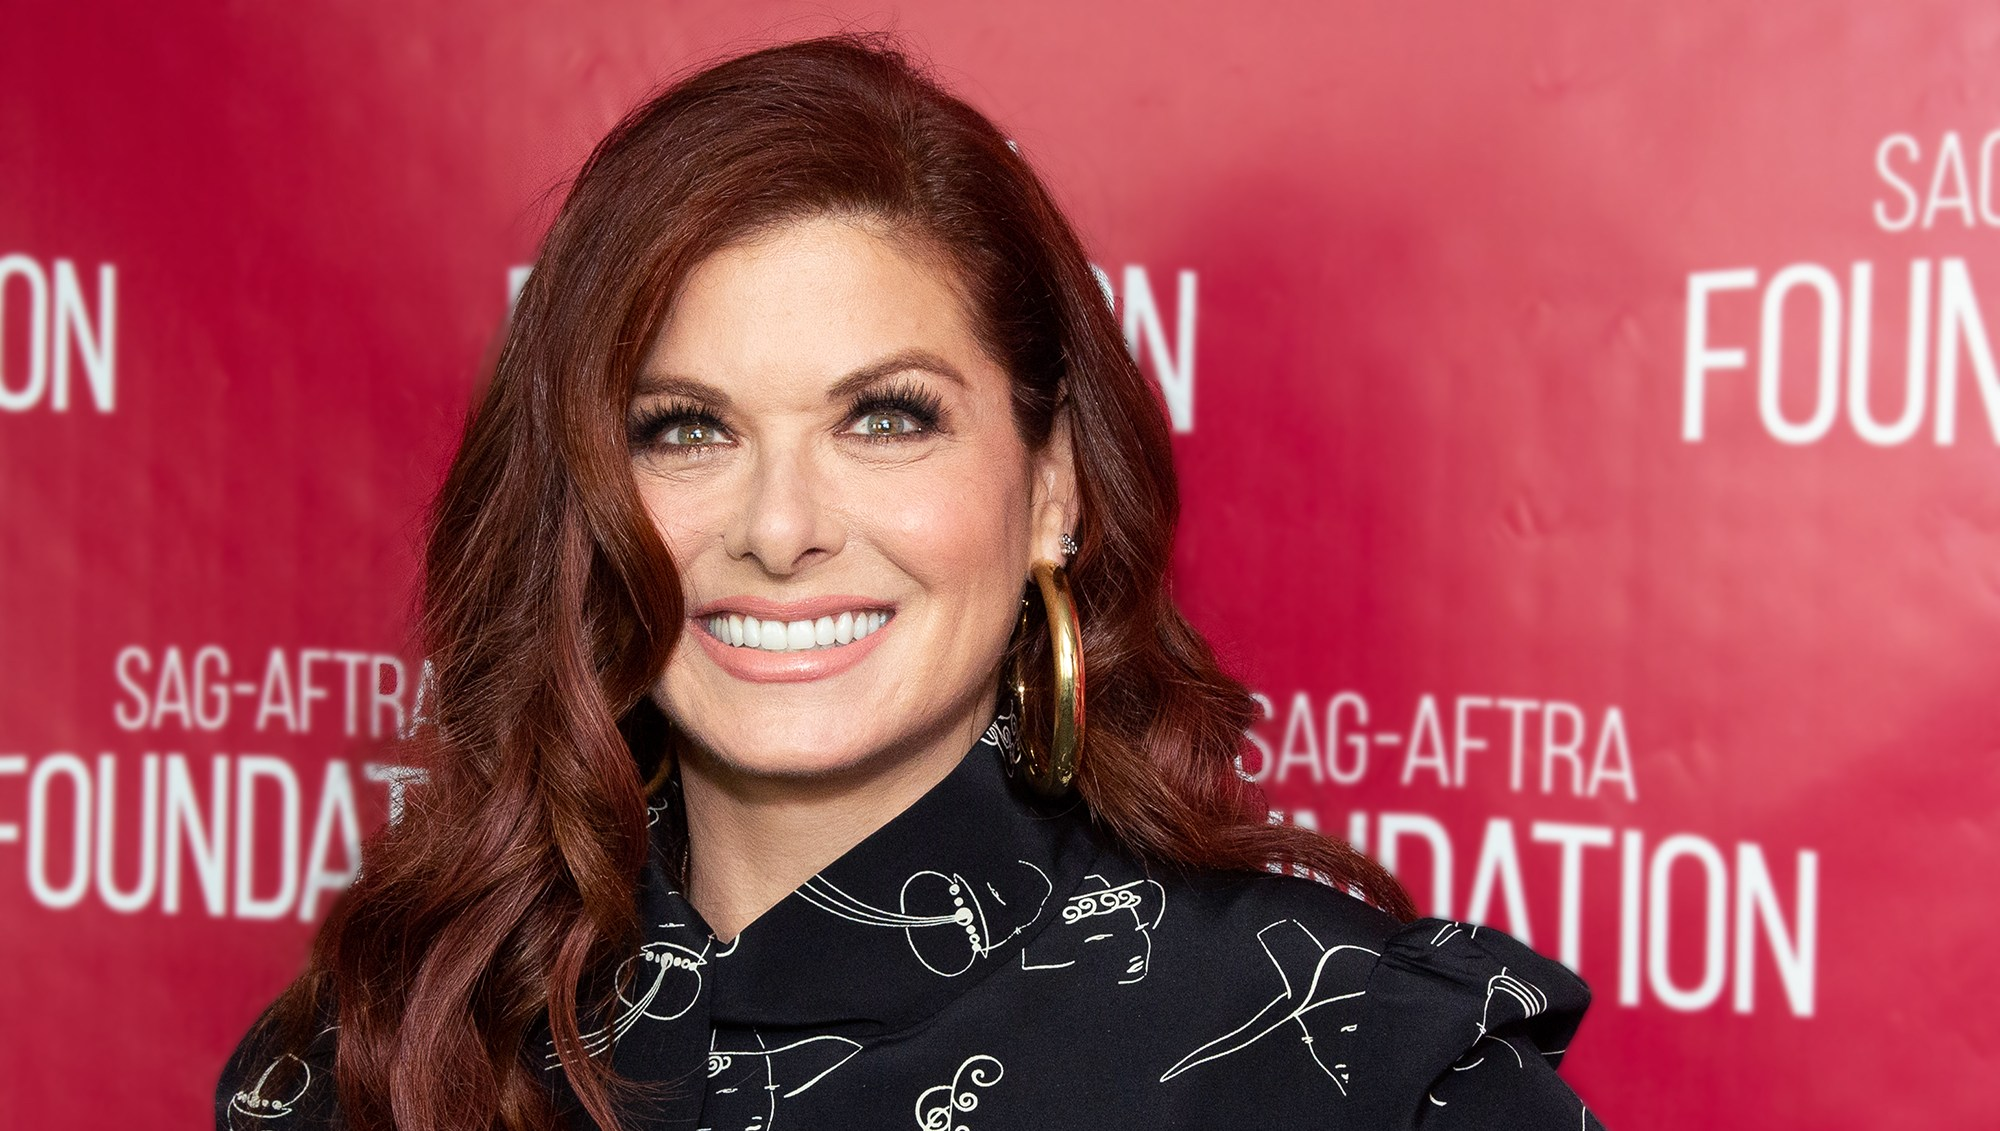 Debra Messing: 25 Things You Don¹t Know About Me!